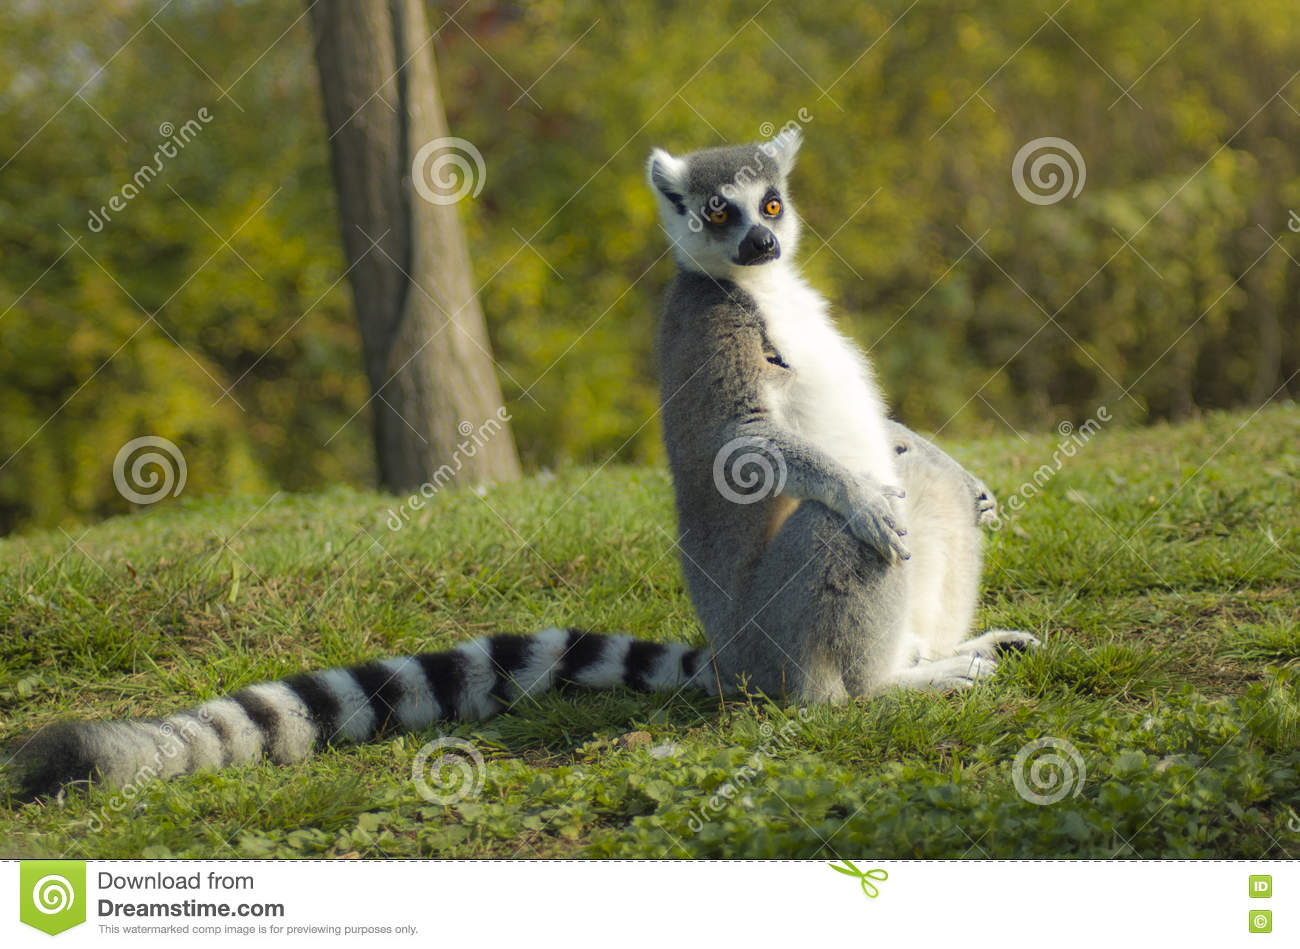 Lemure Dalla Coda Ad Anelli O Lemure Catta O Katta Lemur Catta Stock Photo Image Of Laure Lemur 80170428